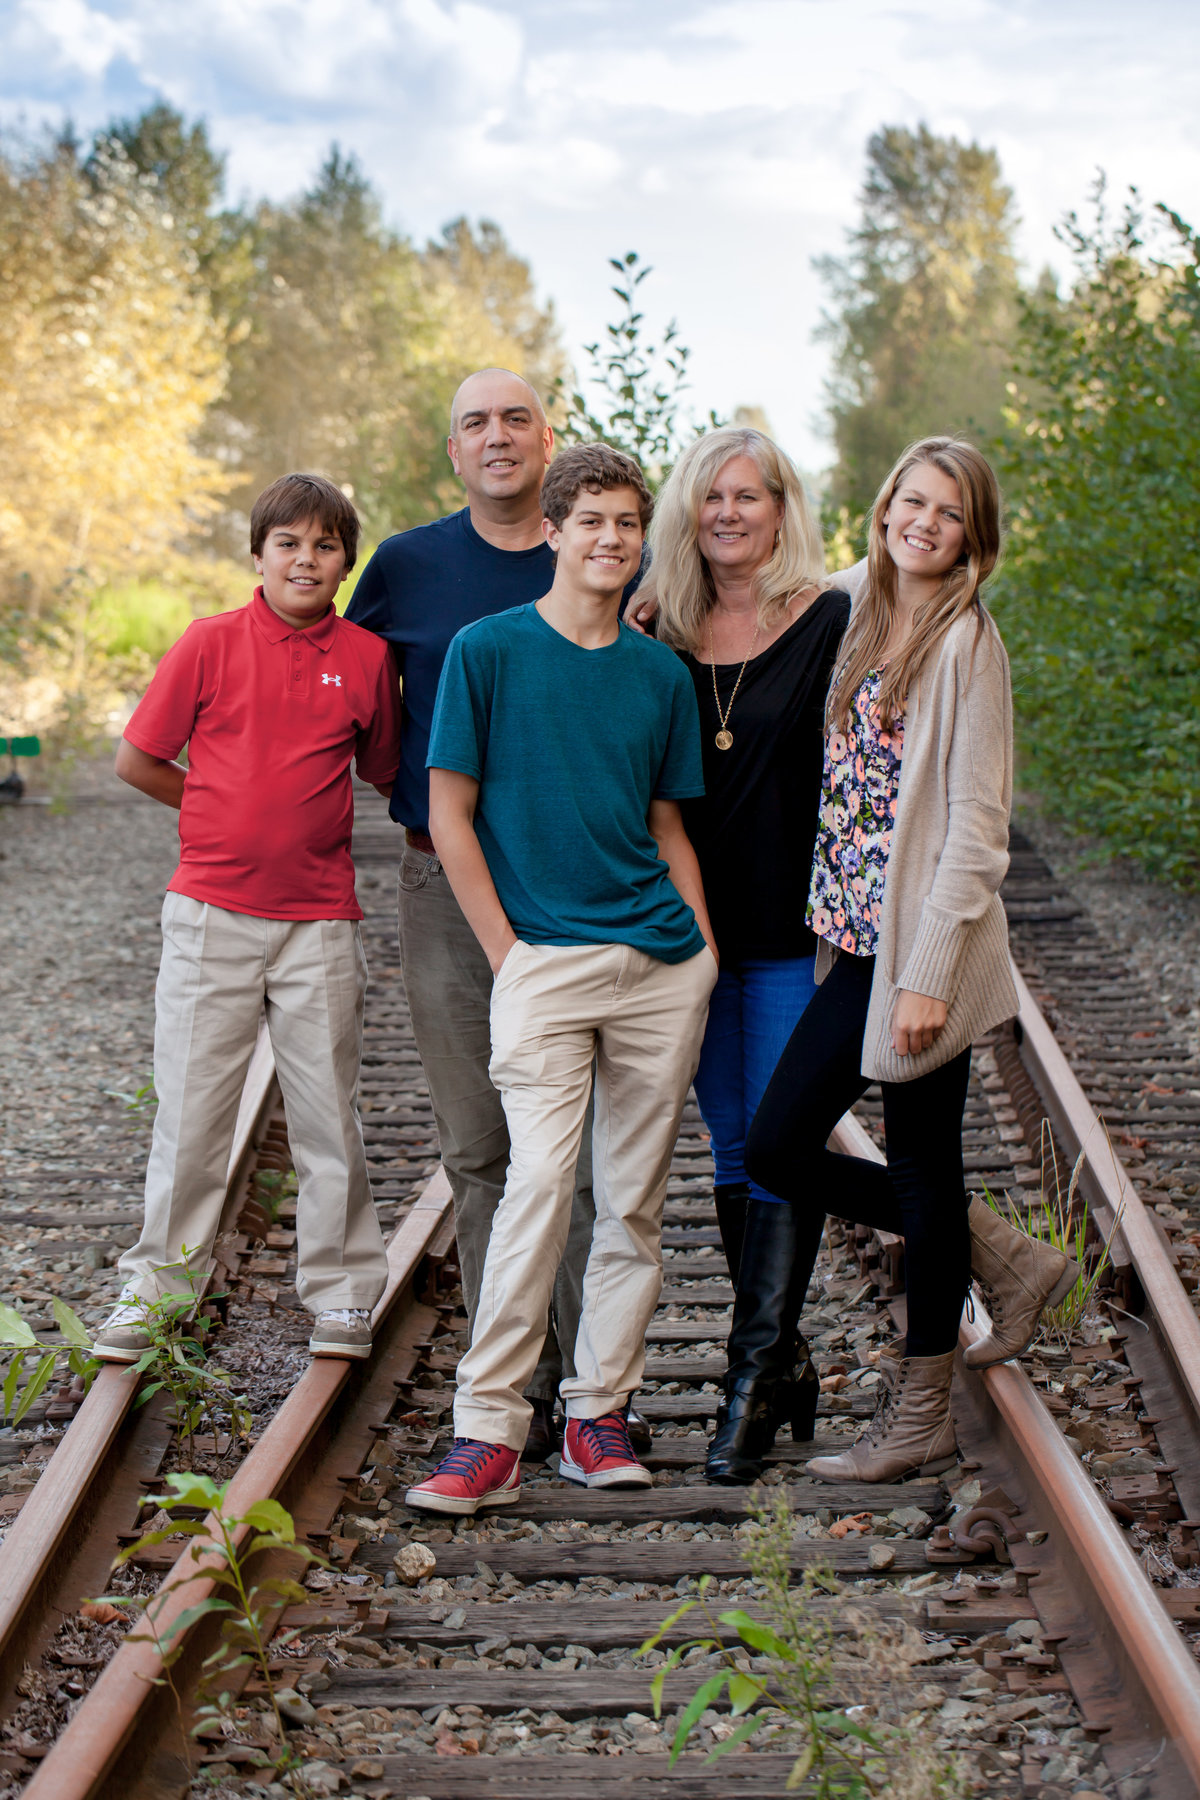 Family photo session in Bellevue, WA